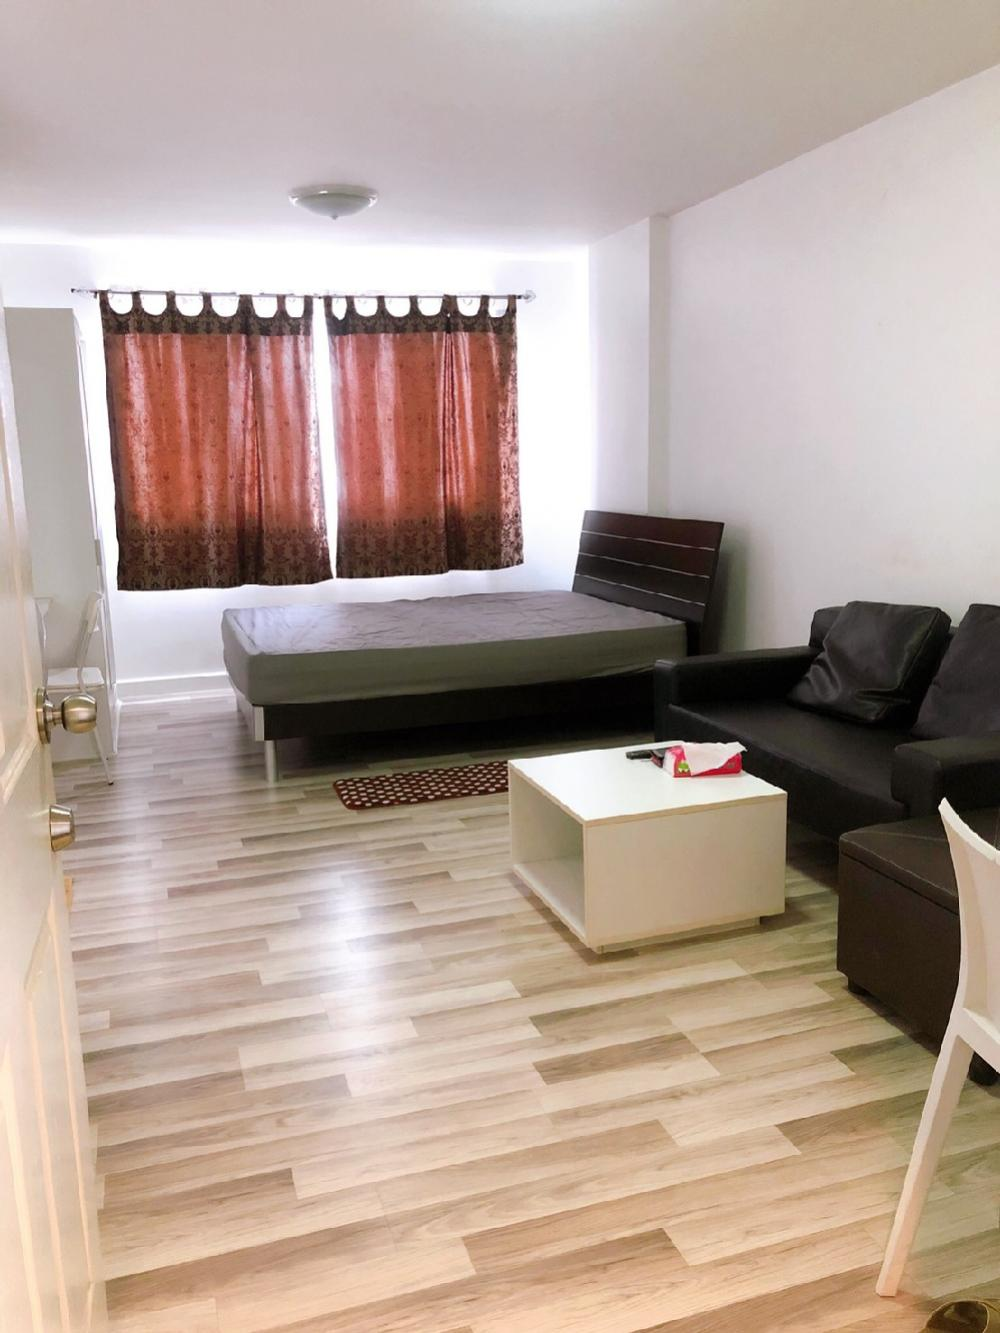 For RentCondoNawamin, Ramindra : 🏢 For rent, D Condo Ramindra, next to the expressway, good location, convenient transportation, beautiful room with complete furniture, price only 7,000 / month 📌📌